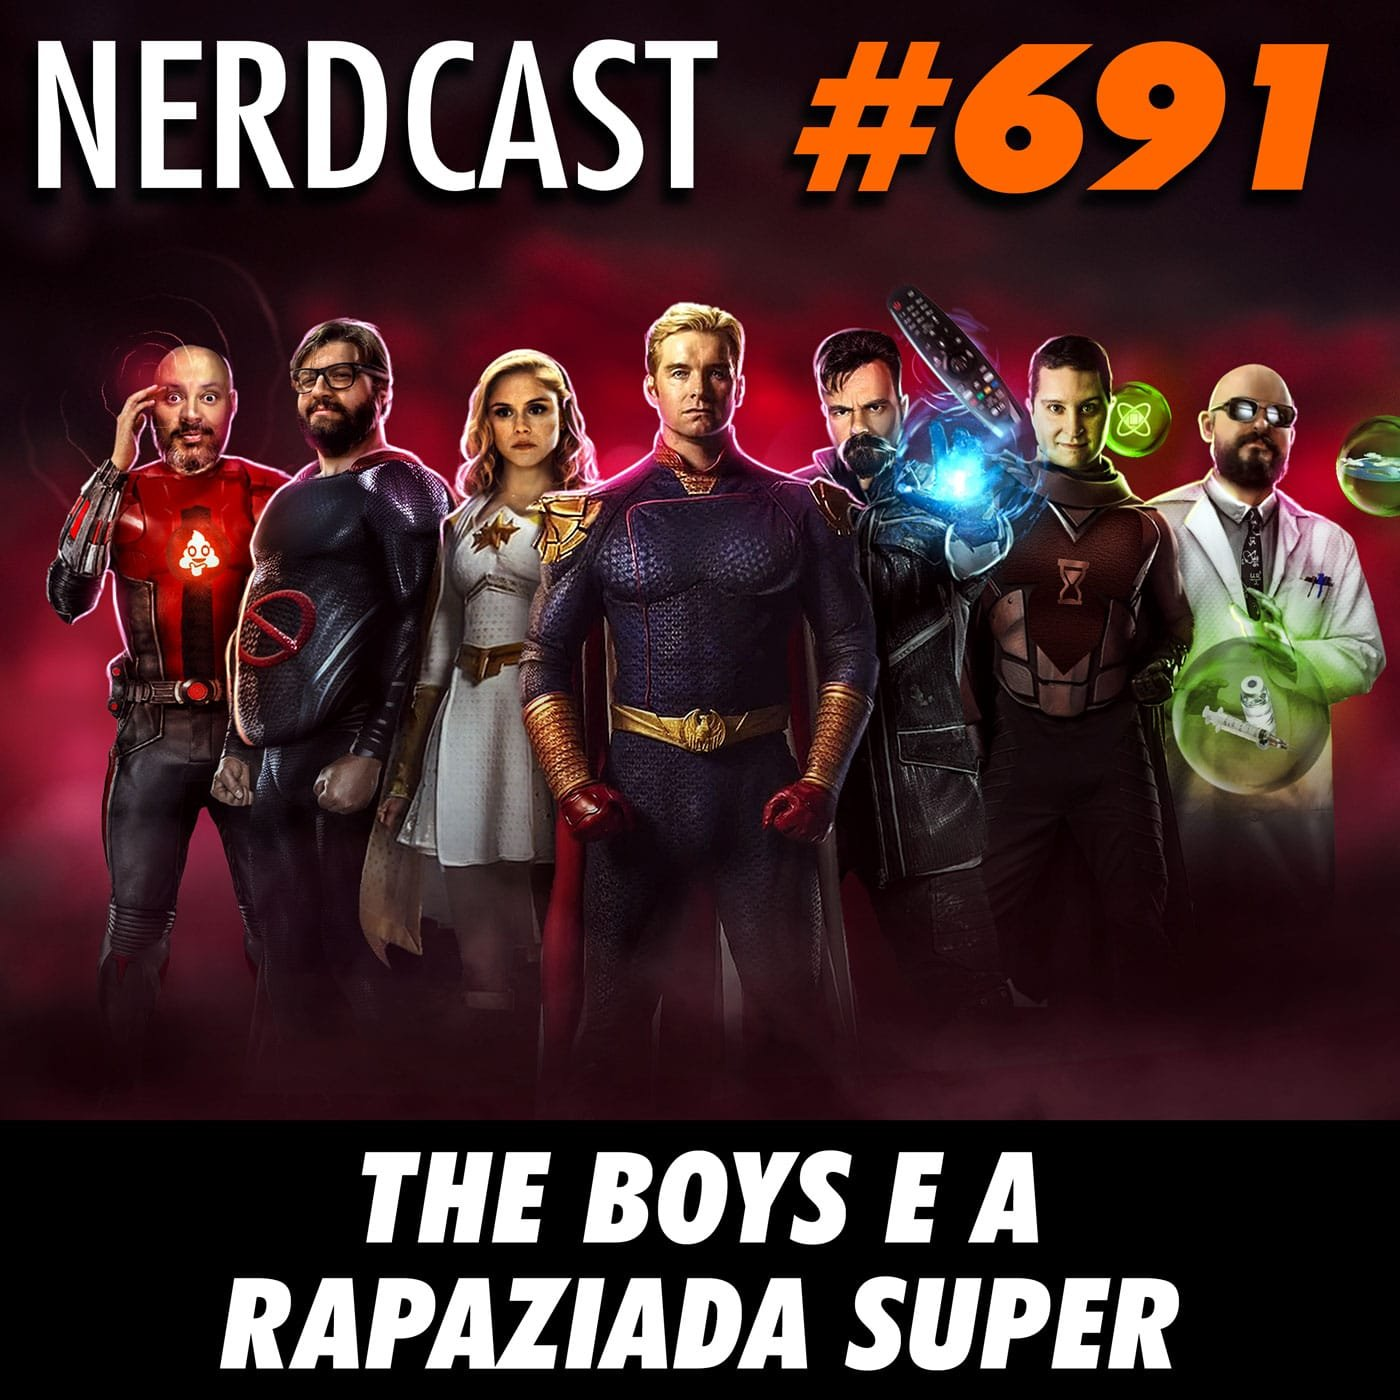 NerdCast 691 - The Boys e a rapaziada super